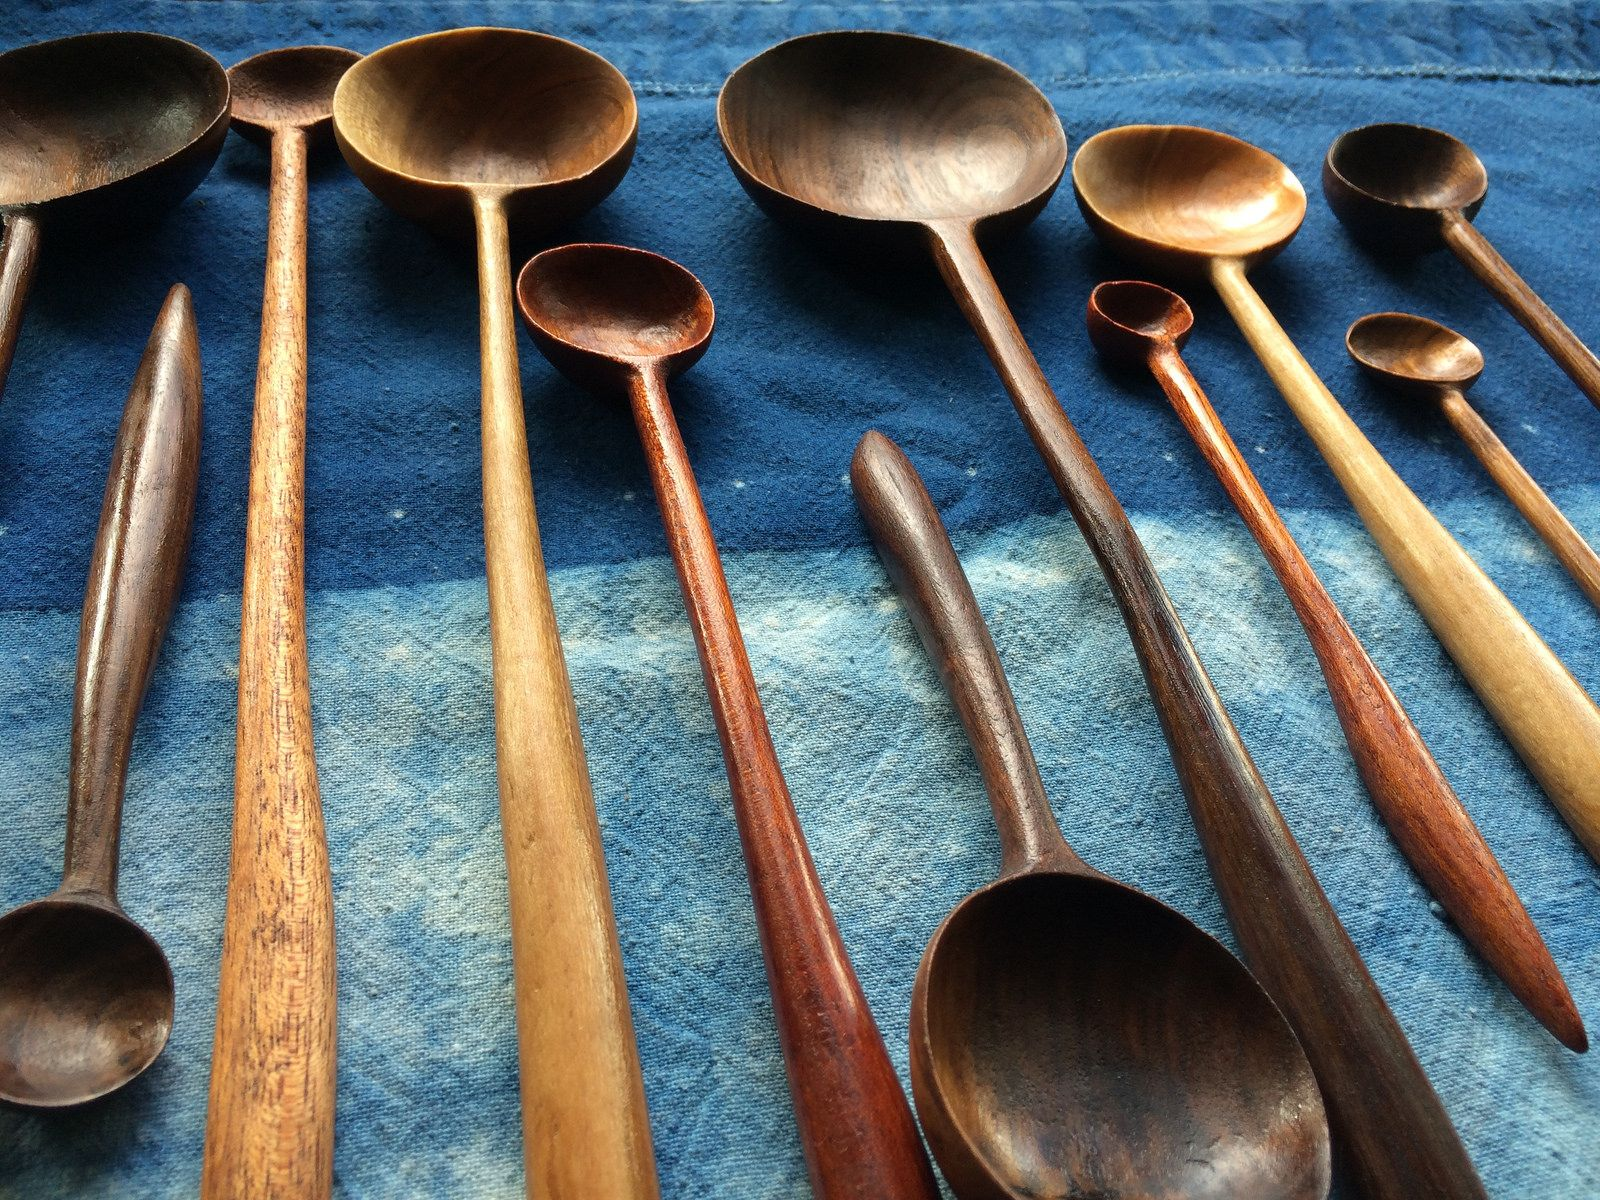 Windy Chien Fat Bottomed Girls Handcarved Wood Spoons | Spoon, Woods ...